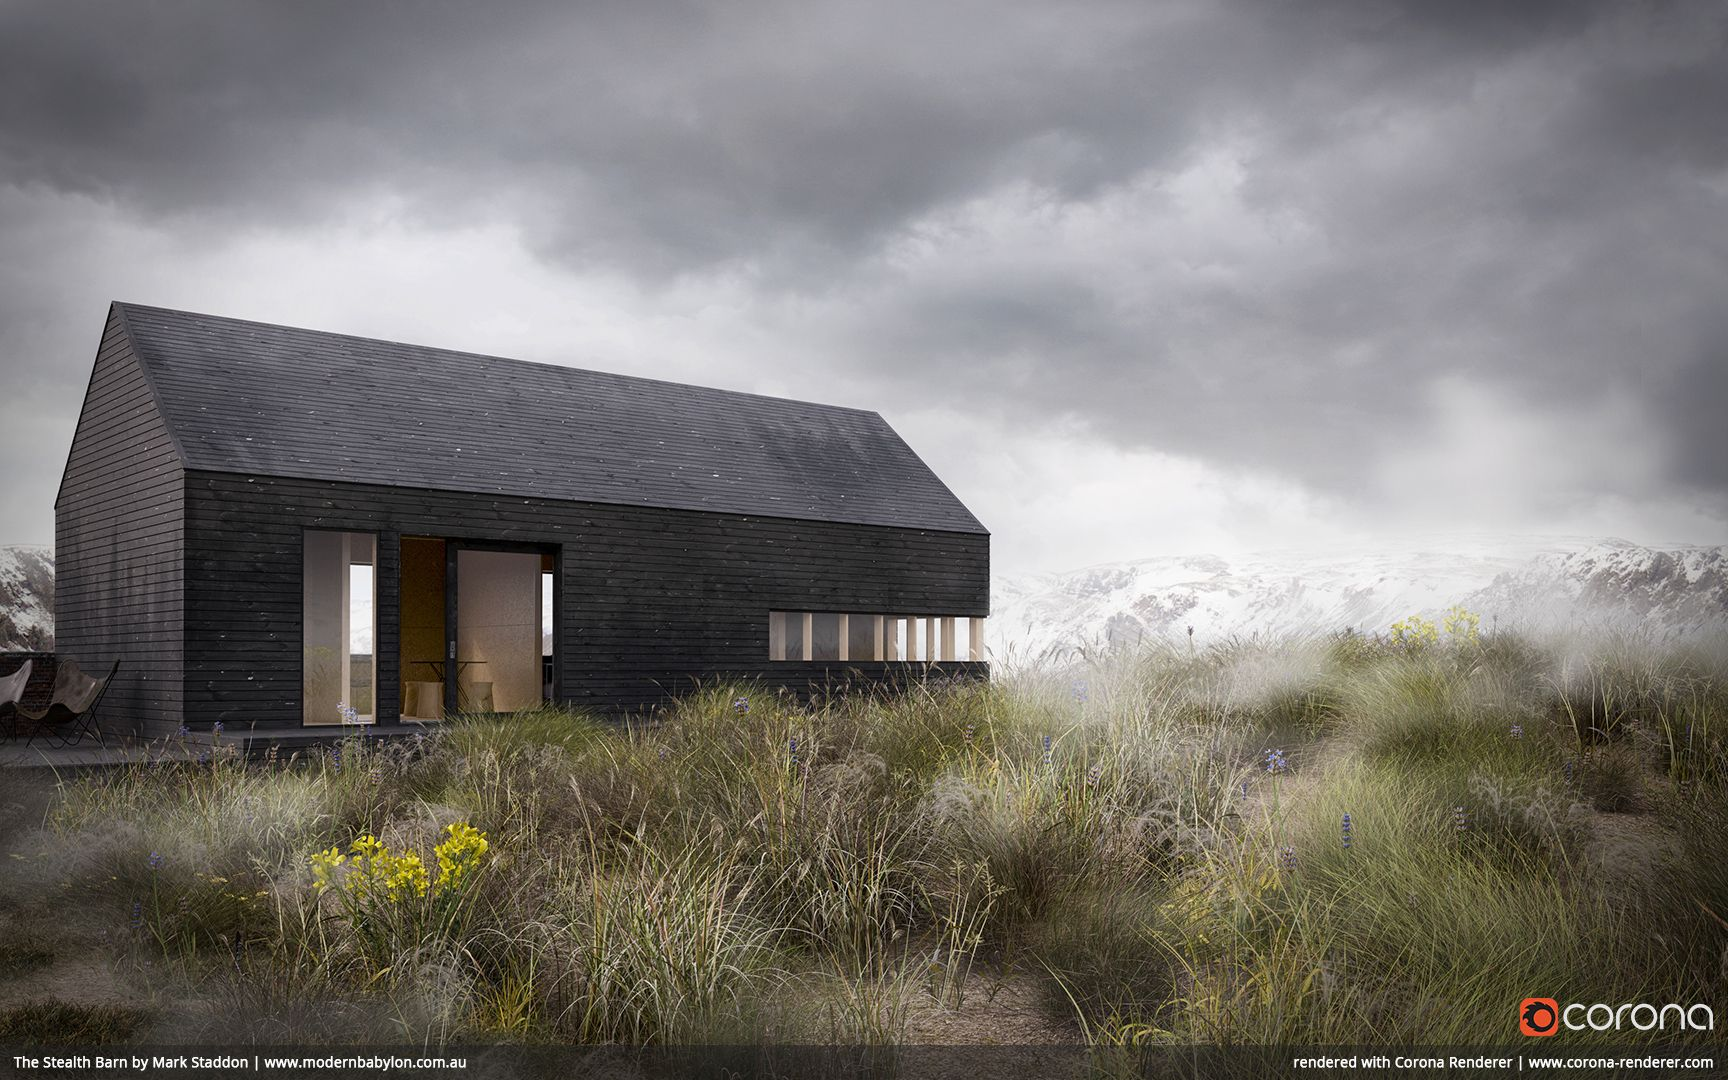 Gallery Corona Renderer Exterior Renders Pinterest Corona Architecture And Architecture